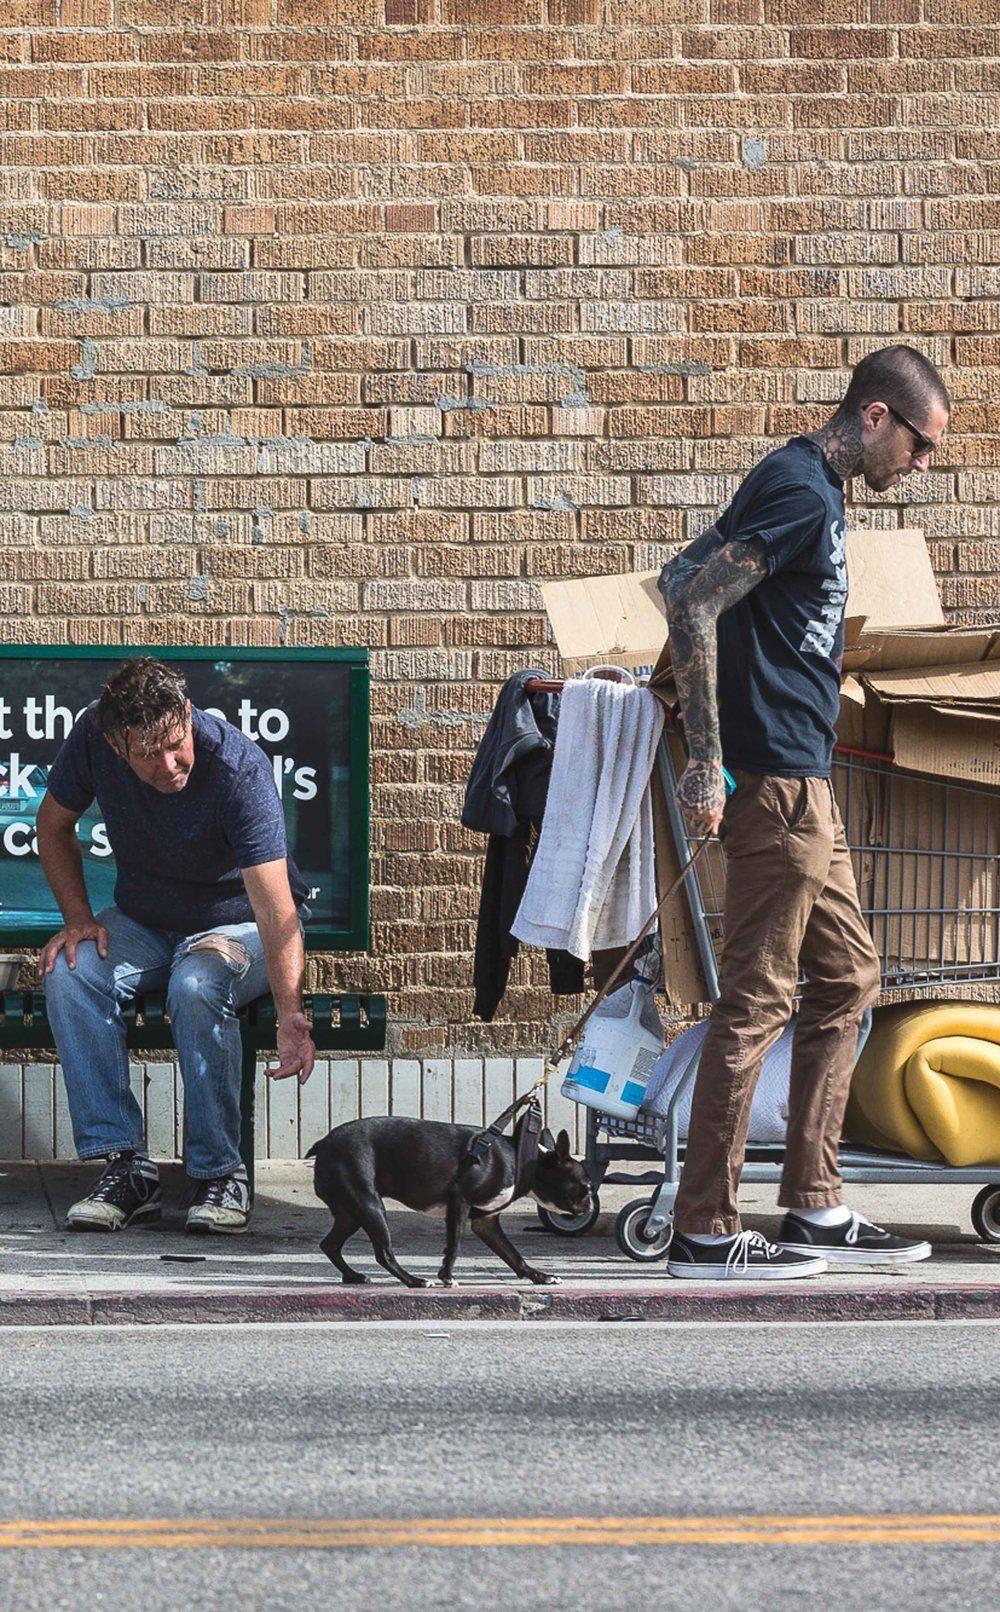 "Floyd (left), 55, a frequent roamer of Venice streets attempts to pat a local hipsters dog as it is pulled away by the owner on Westminster Ave in Venice, CA on October 16, 2016. The photograph illustrates the overlooked past and privileged present of the area and how gentrification is pushing the homeless out of the ""hippest street in the United States."" (Photo by Matthew Martin)"